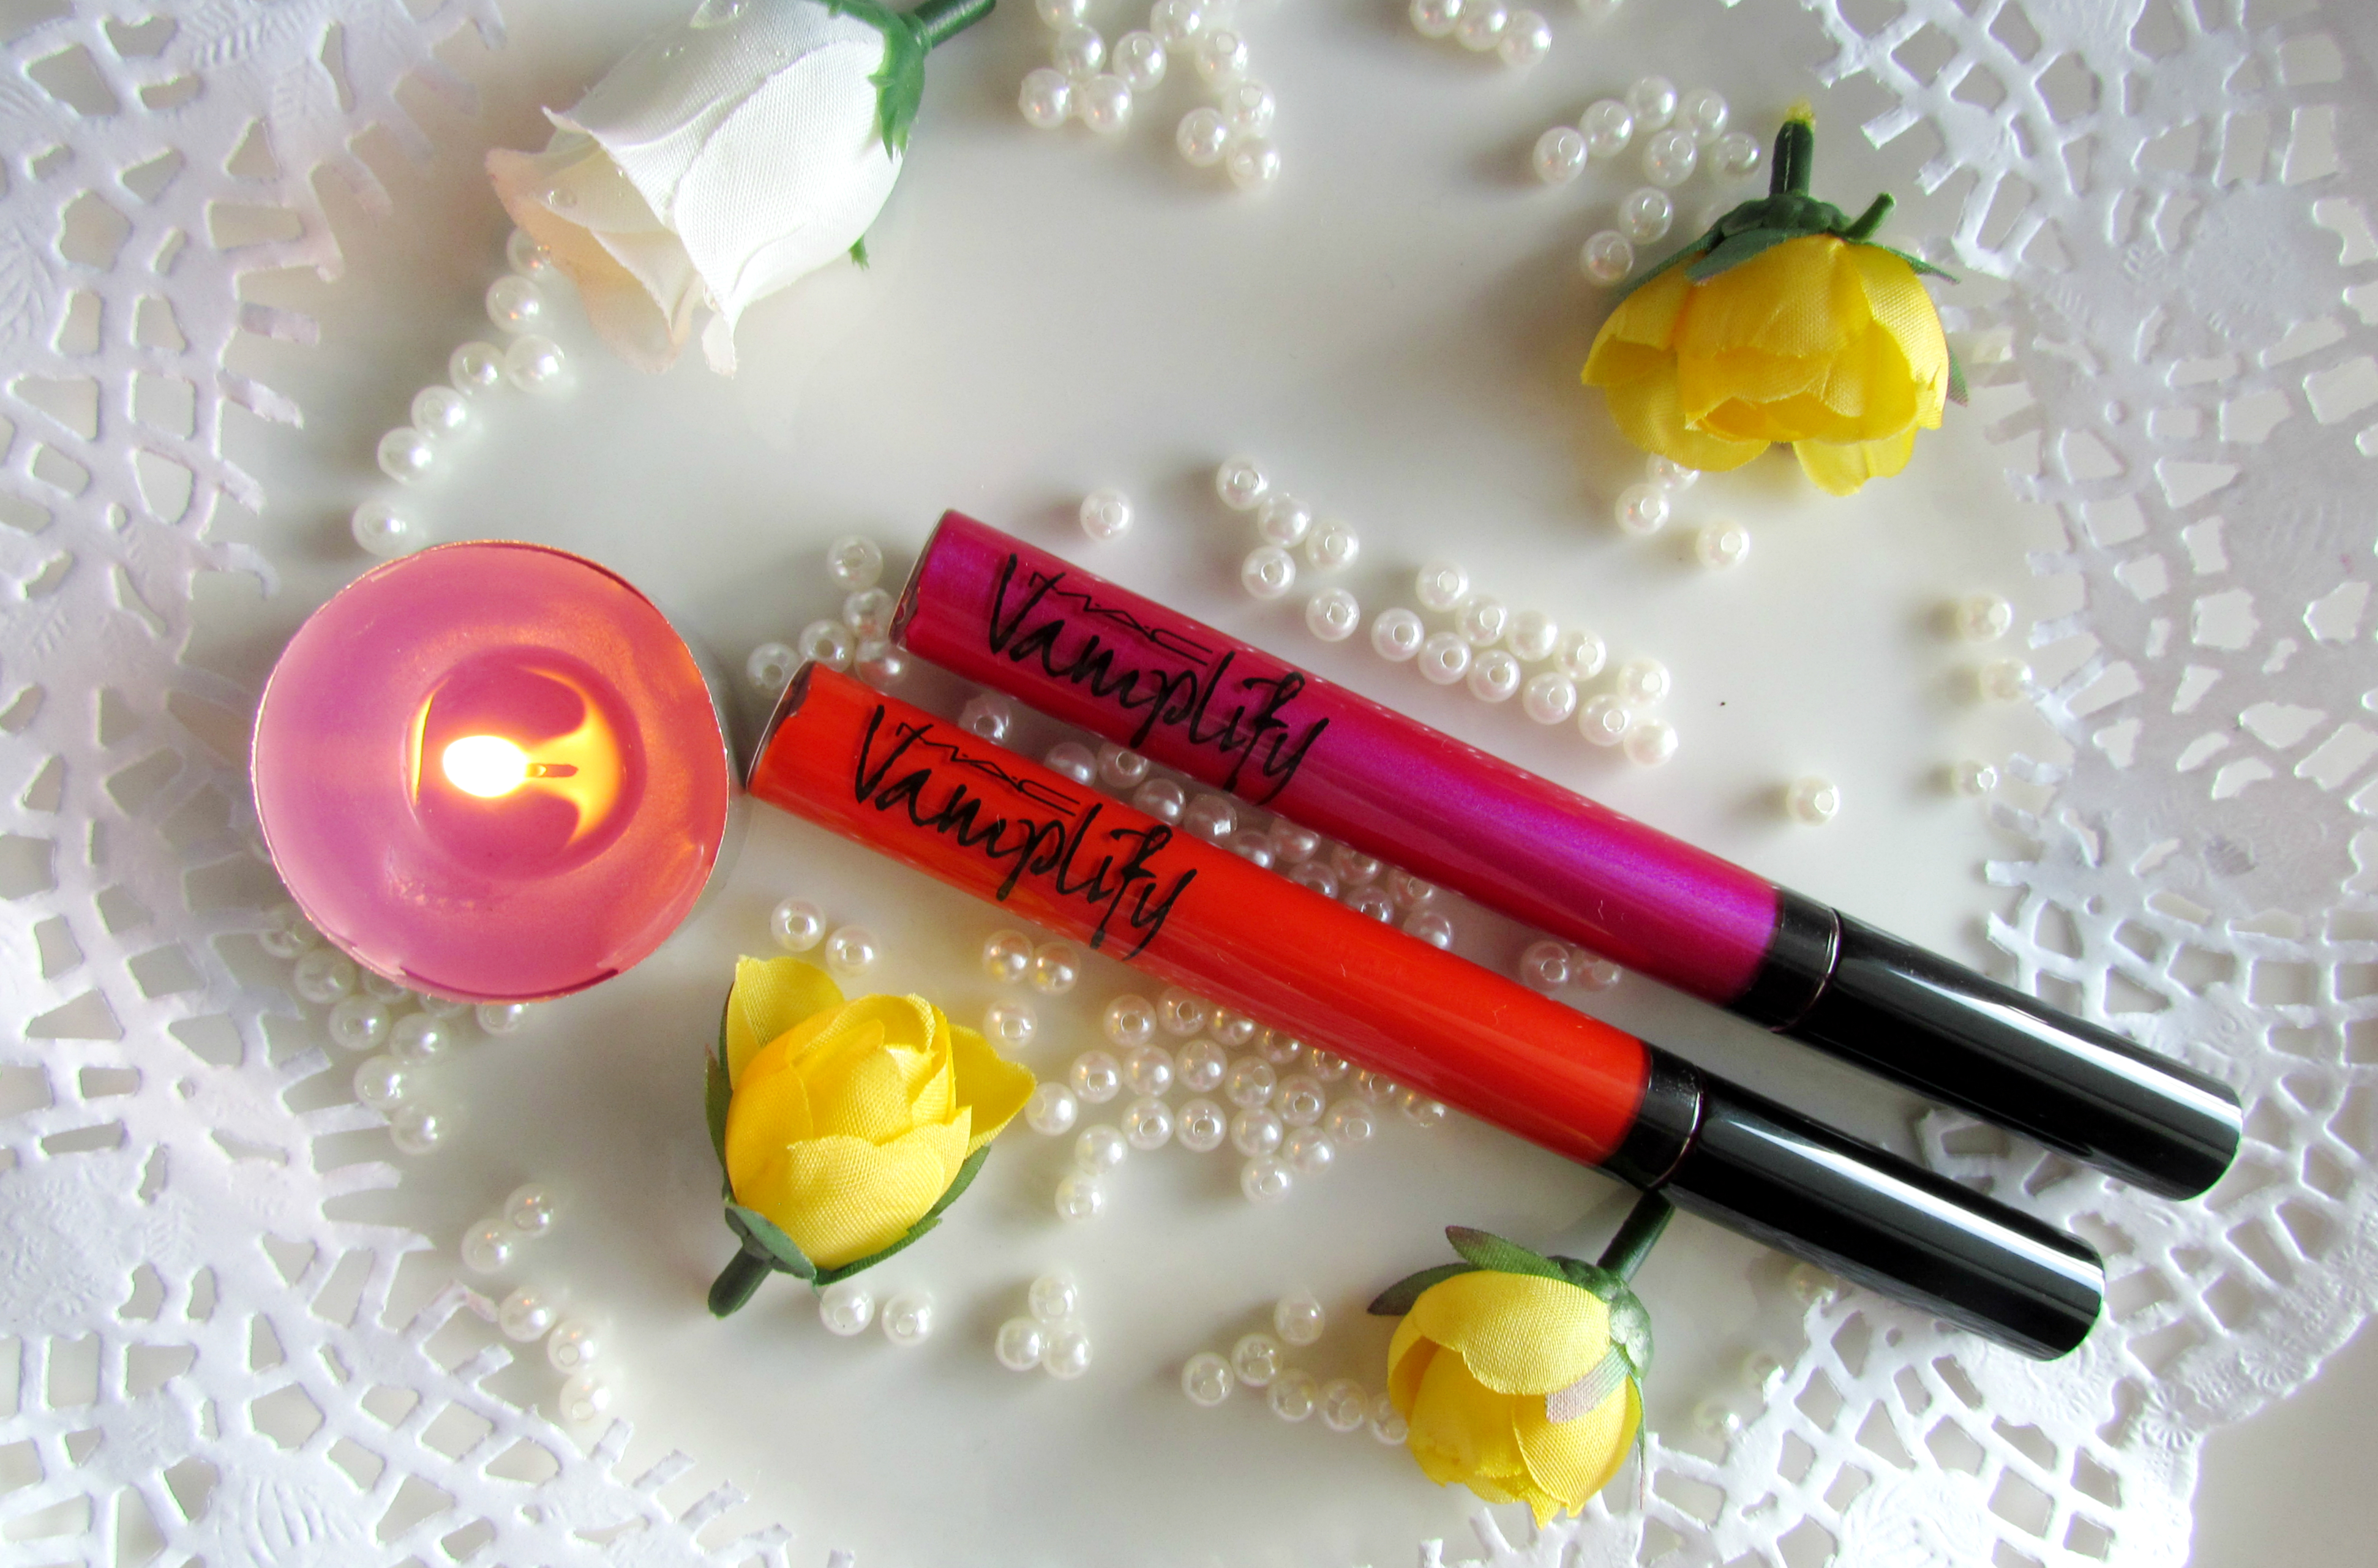 MAC Vamplify Lipgloss – What's going on? & Push some buttons | Review, Swatches & FOTDs